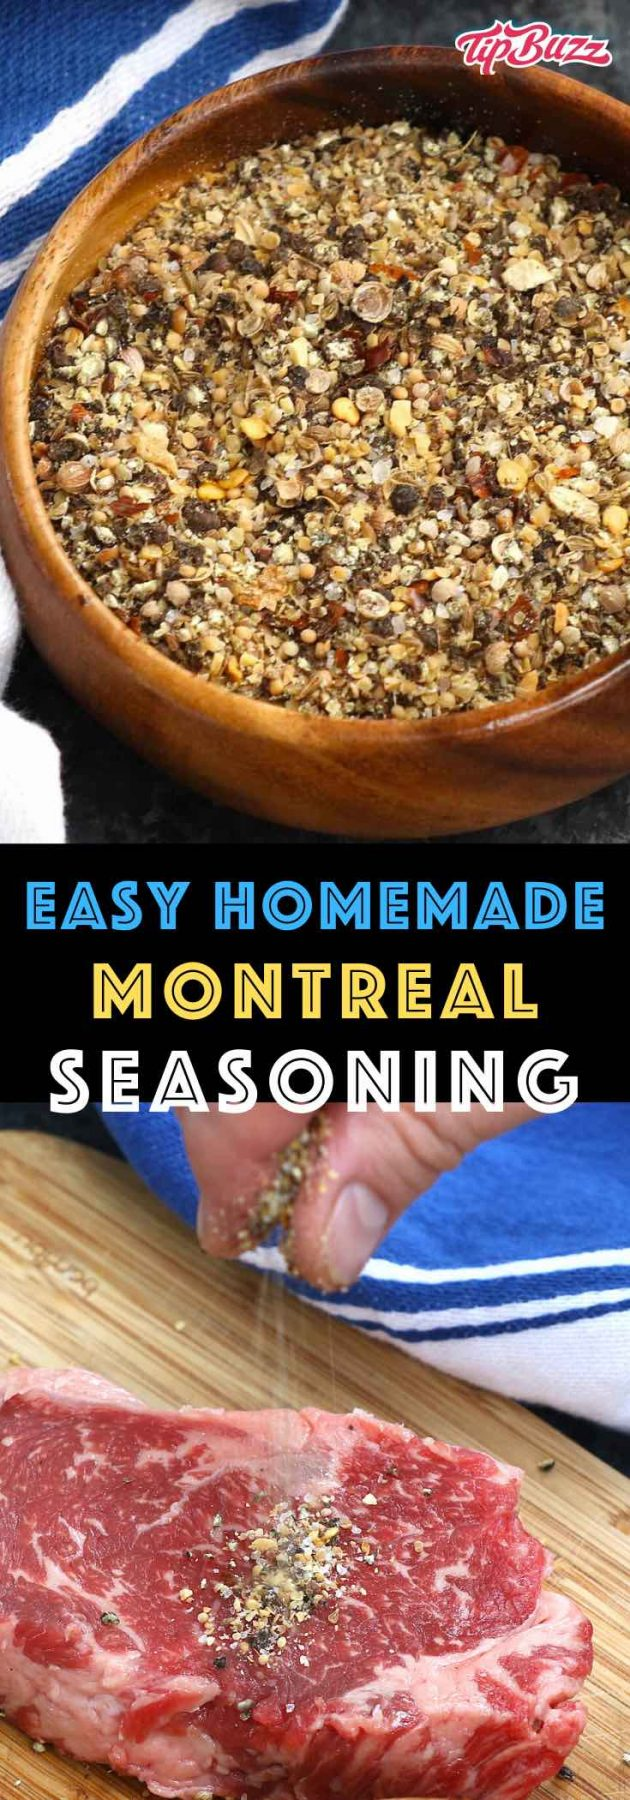 Montreal Steak Seasoning is a delicious rub that enhances the natural flavors of steak and other meats. You can use this homemade recipe for grilling, broiling or pan frying. So much better than storebought! #MontrealSeasoning #SteakSeasoning